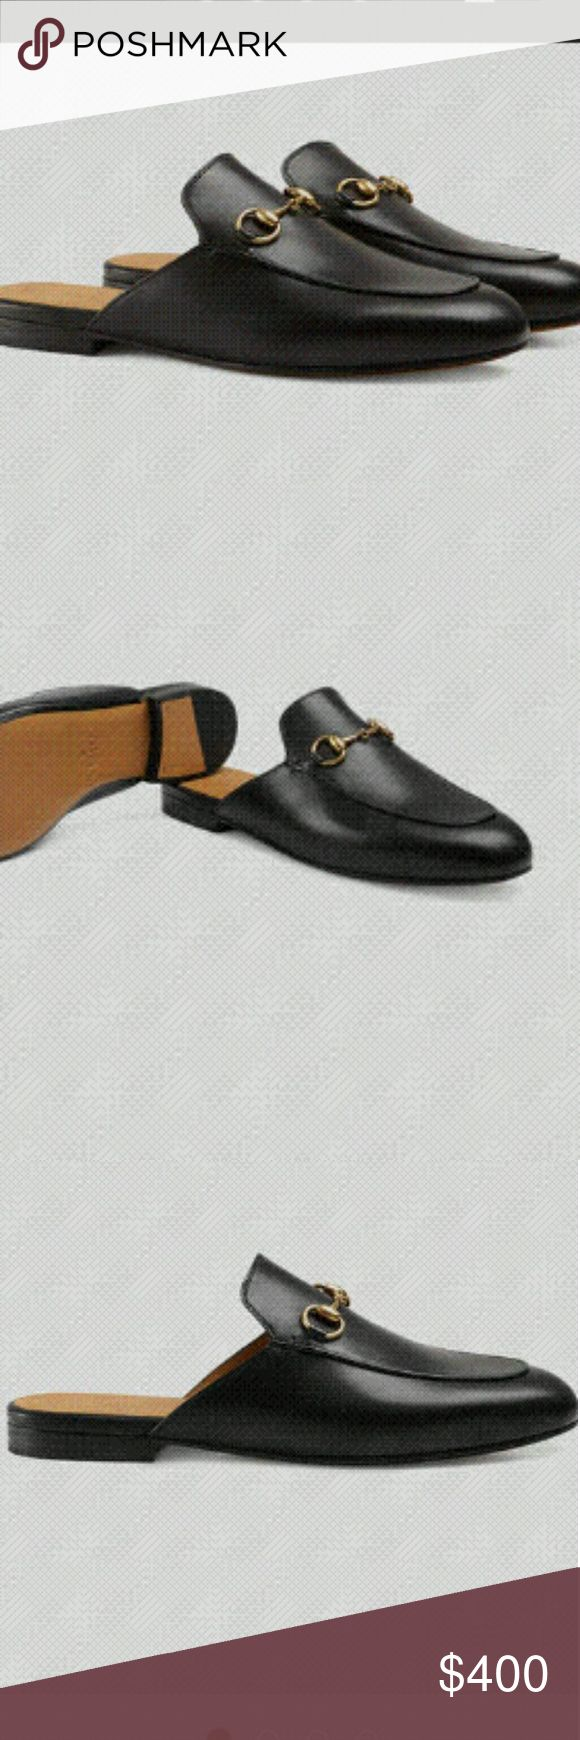 New Princetown loafer mules USA size 8 Brand new black leather mules with dust bag and authenticity card. Gucci Shoes Mules & Clogs